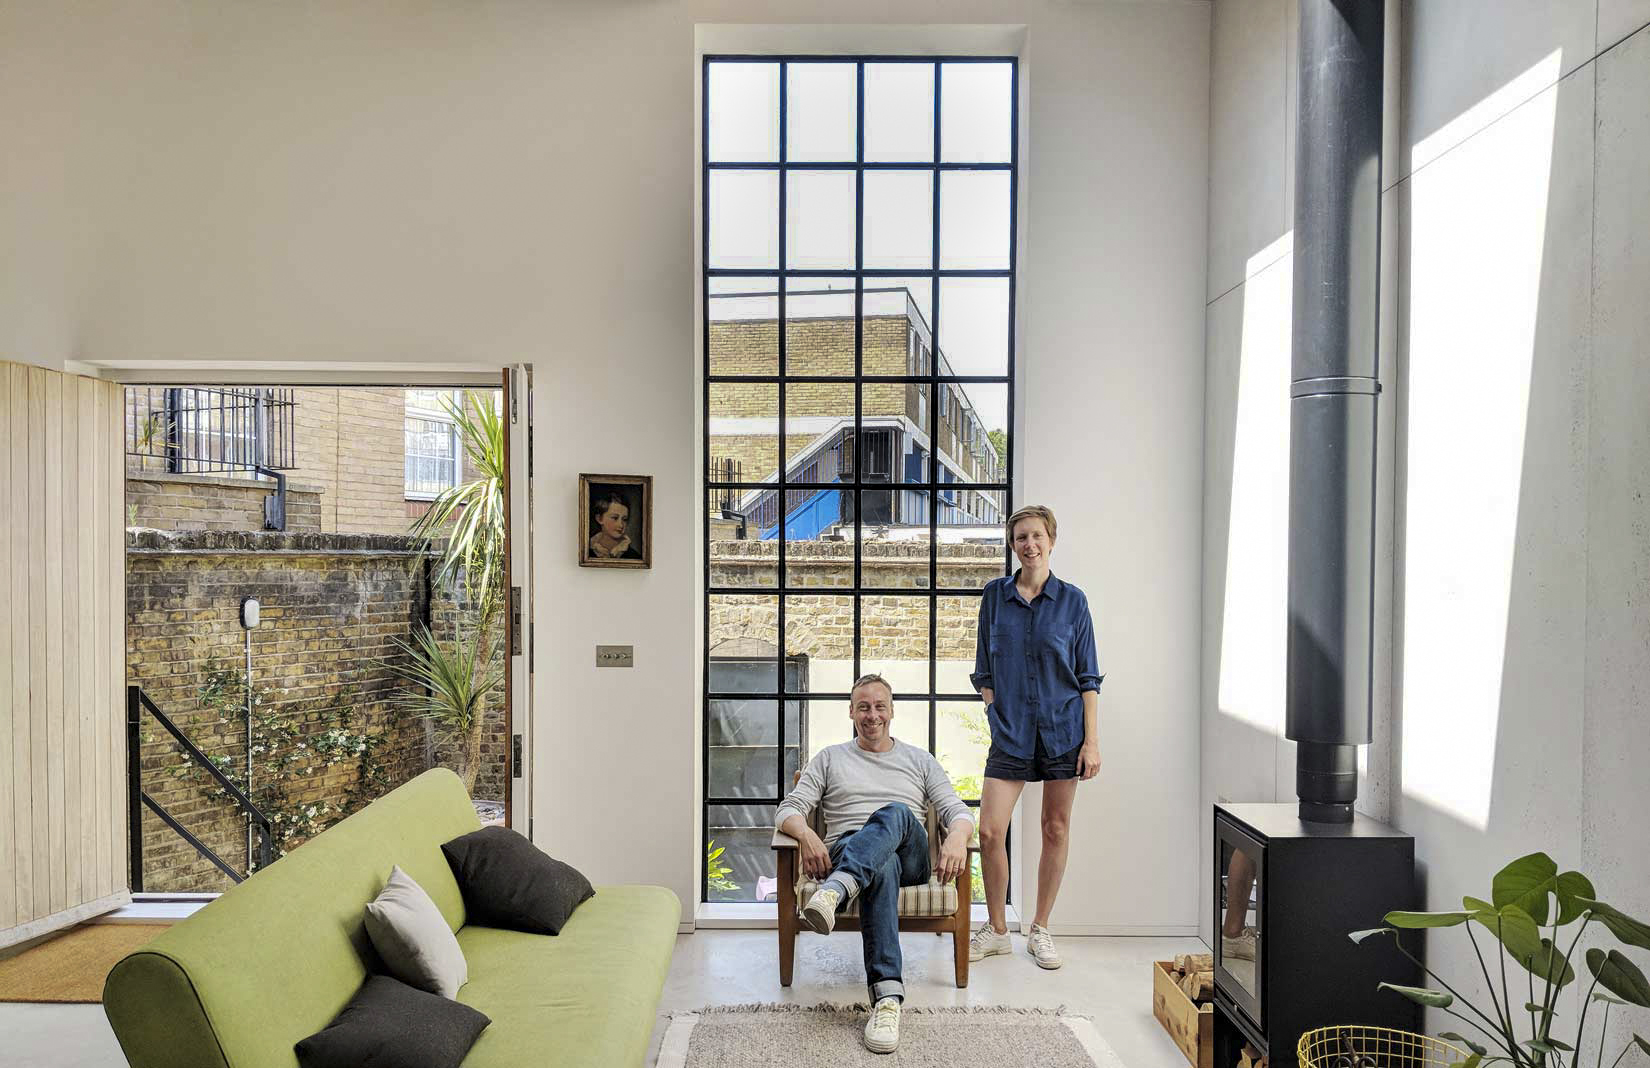 Rupert Scott and Leo Wood in their gin distillery they've turned into a home